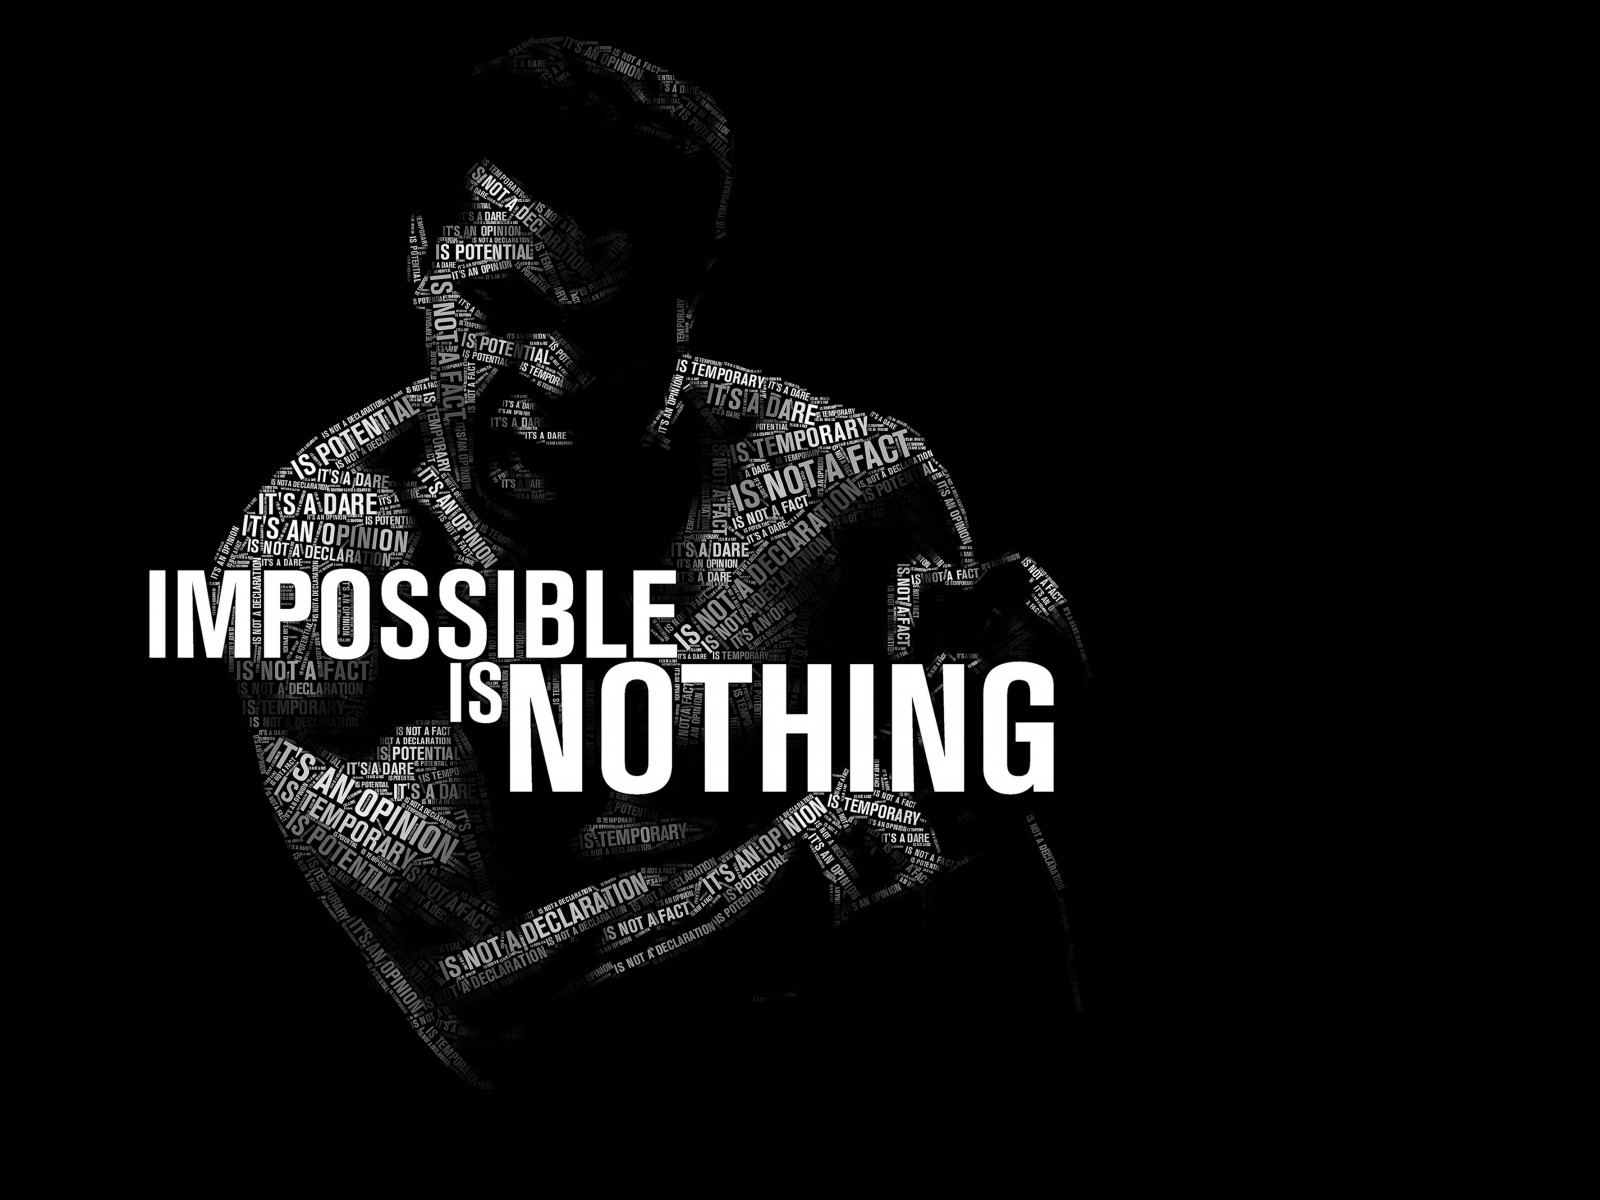 Impossible Is Nothing - Muhammad Ali Wallpaper for Desktop 1600x1200